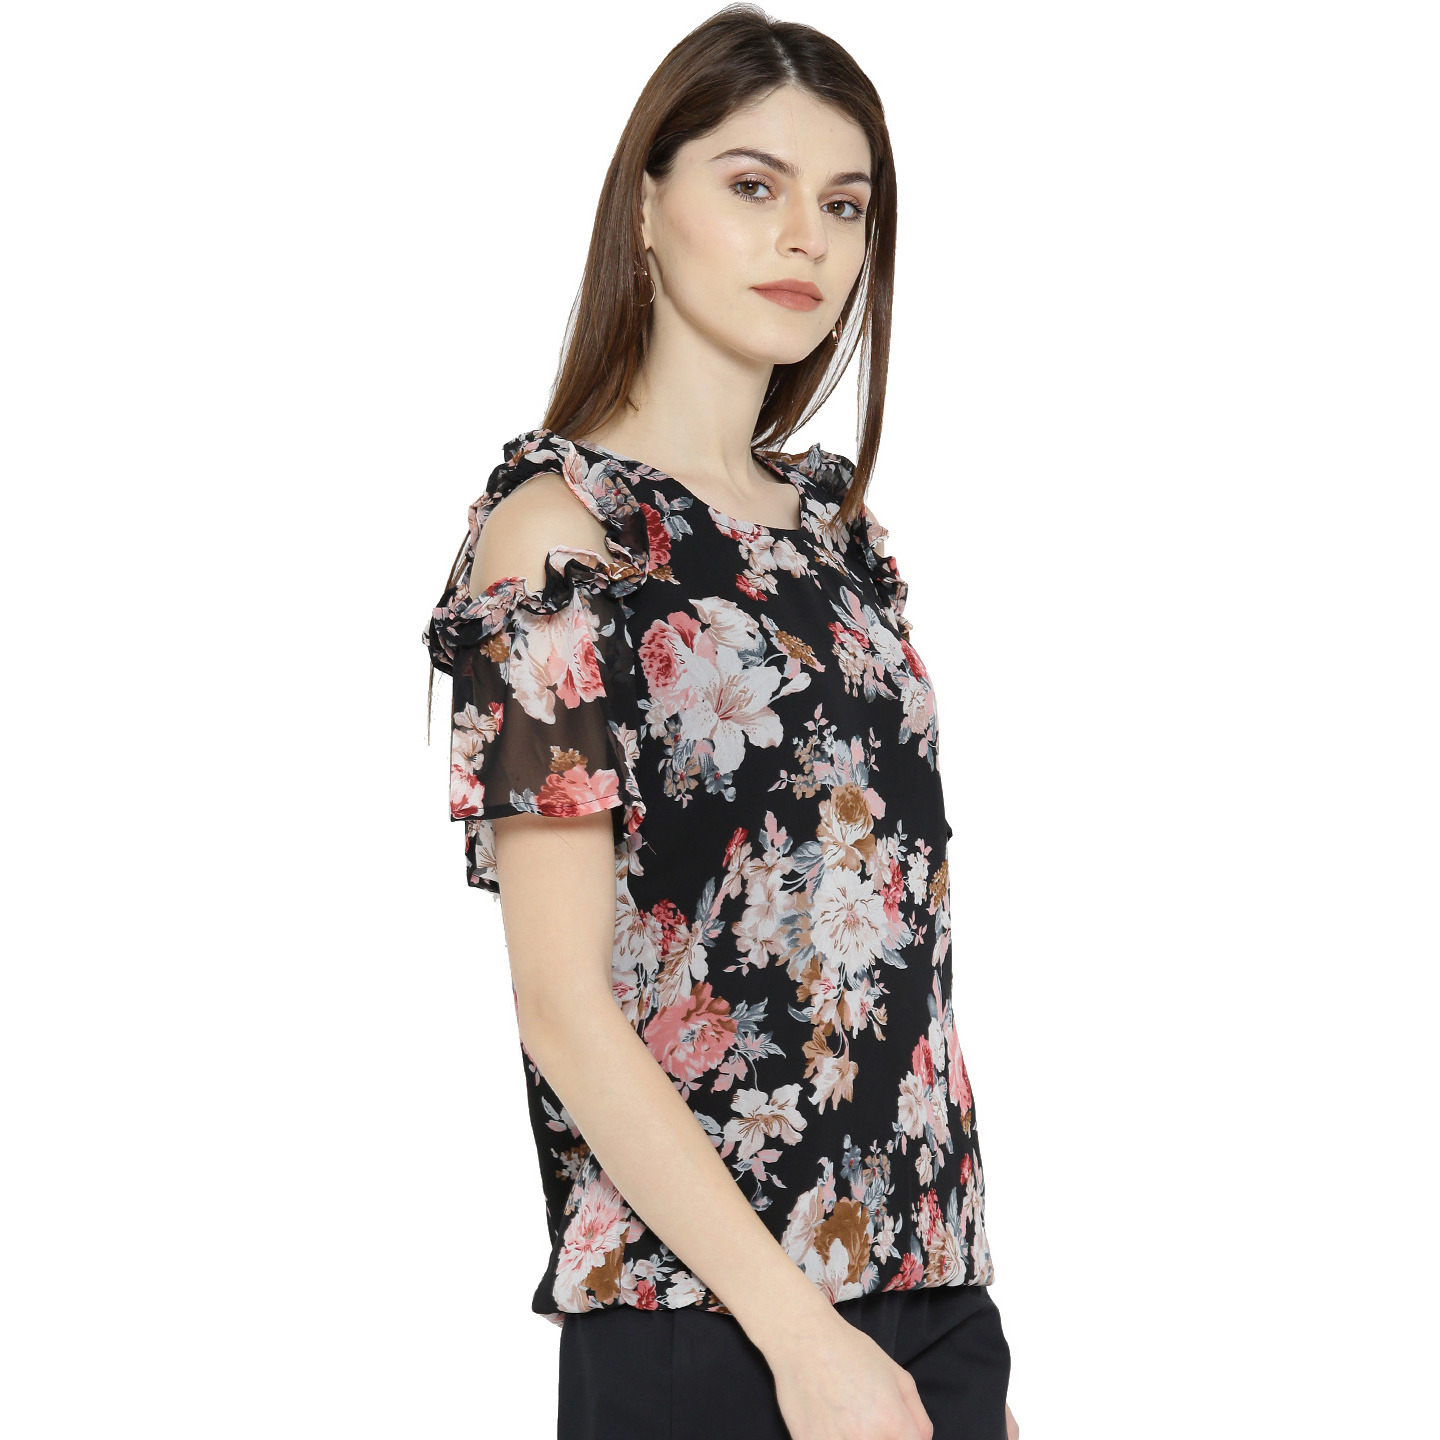 BlackPolyesterColdshoulder Top For Womens